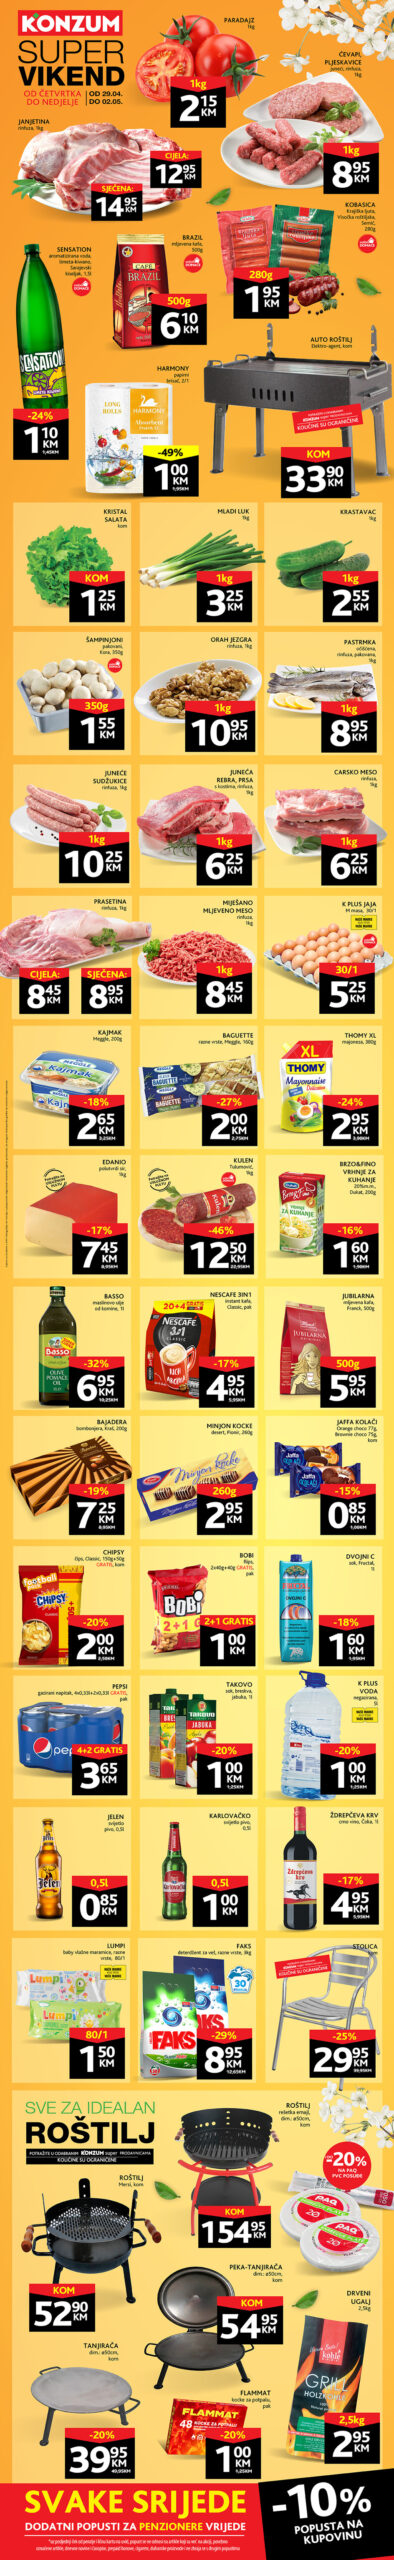 KONZUM Katalog Vikend AKCIJA April i Maj 2021 29.04.2021. 02.05.2021